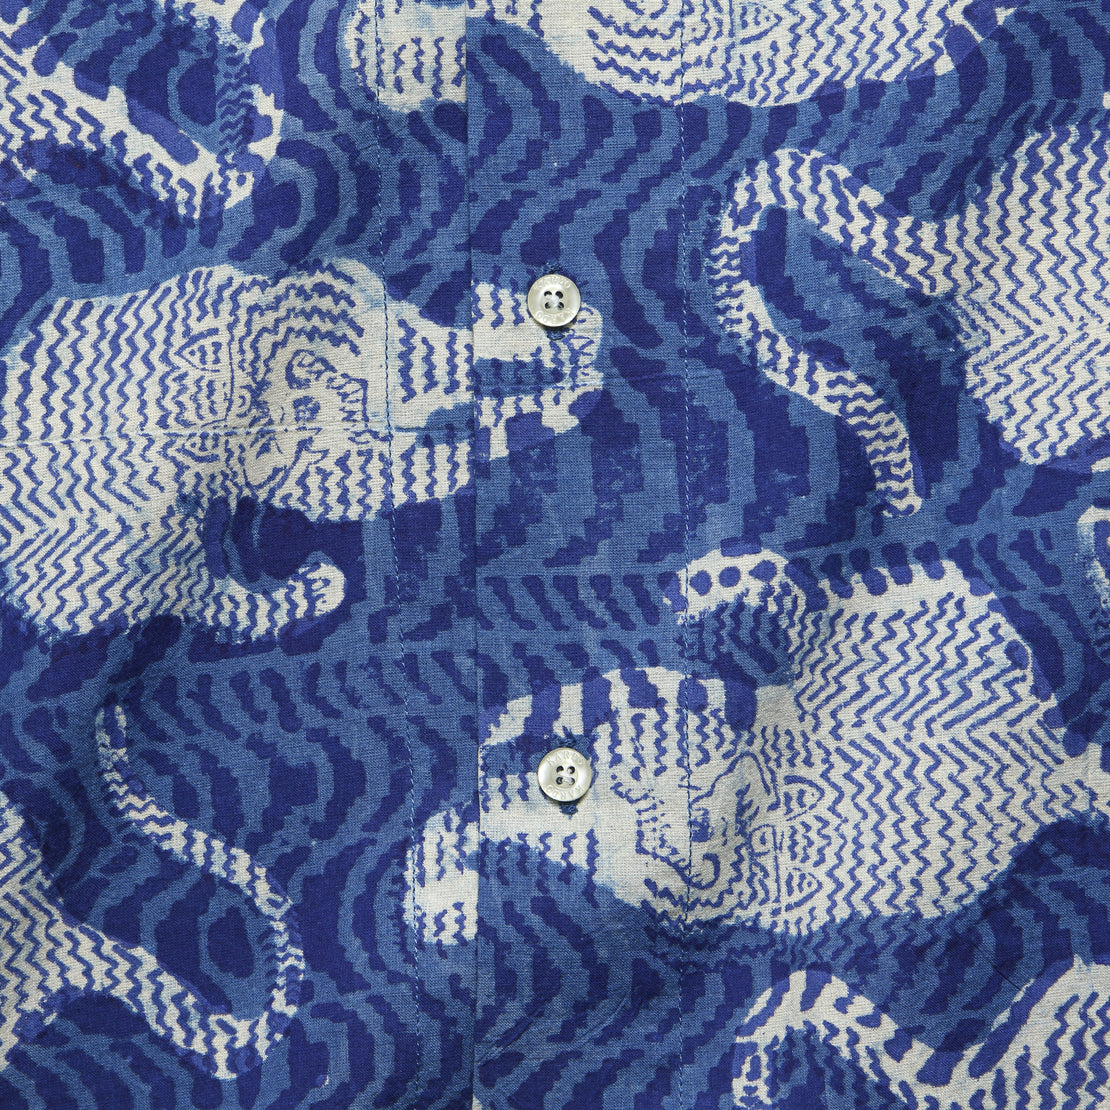 Lamar Shirt - Indigo Blockprint